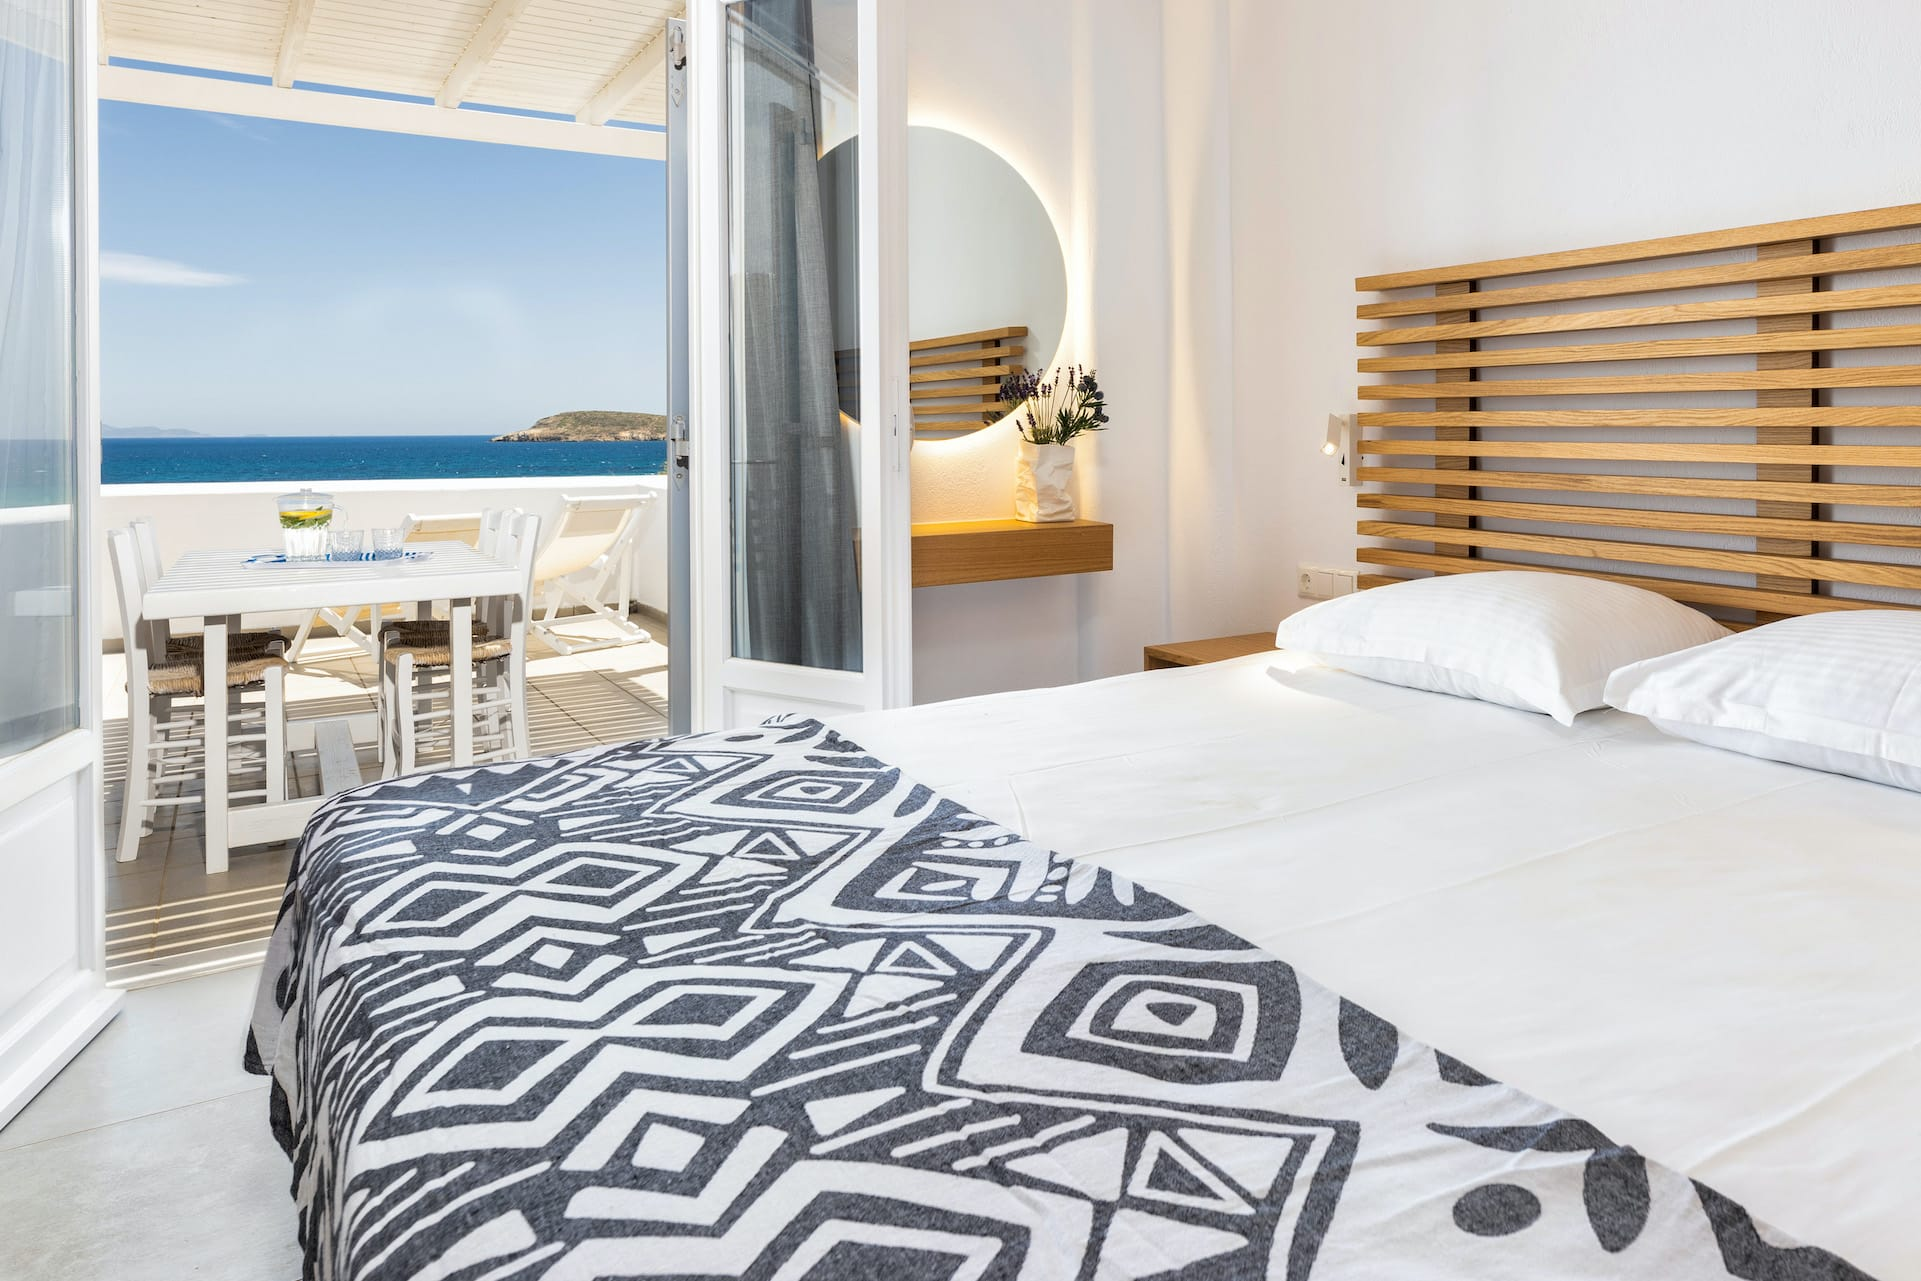 View as seen from the Triple Studio with sea view veranda at the Golden Beach Hotel in Paros